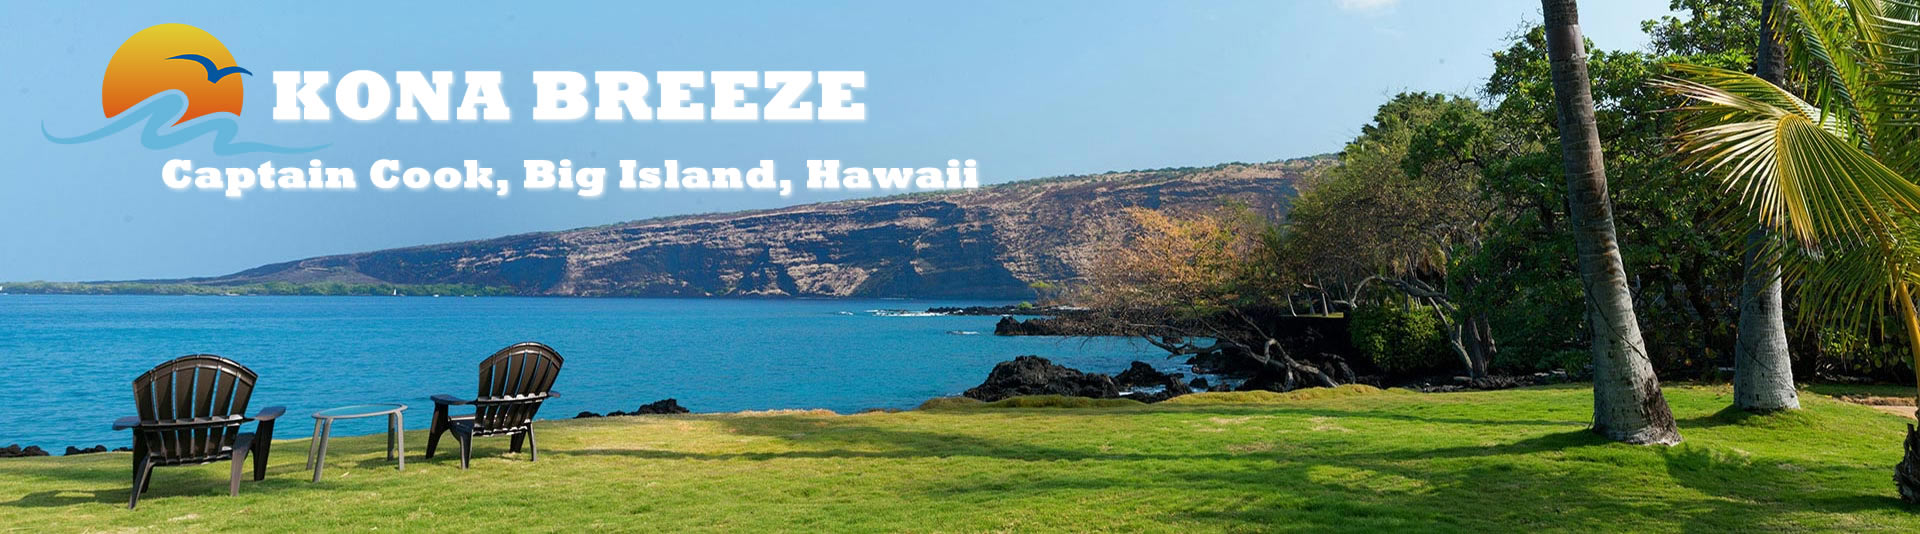 kona breeze hawaii header